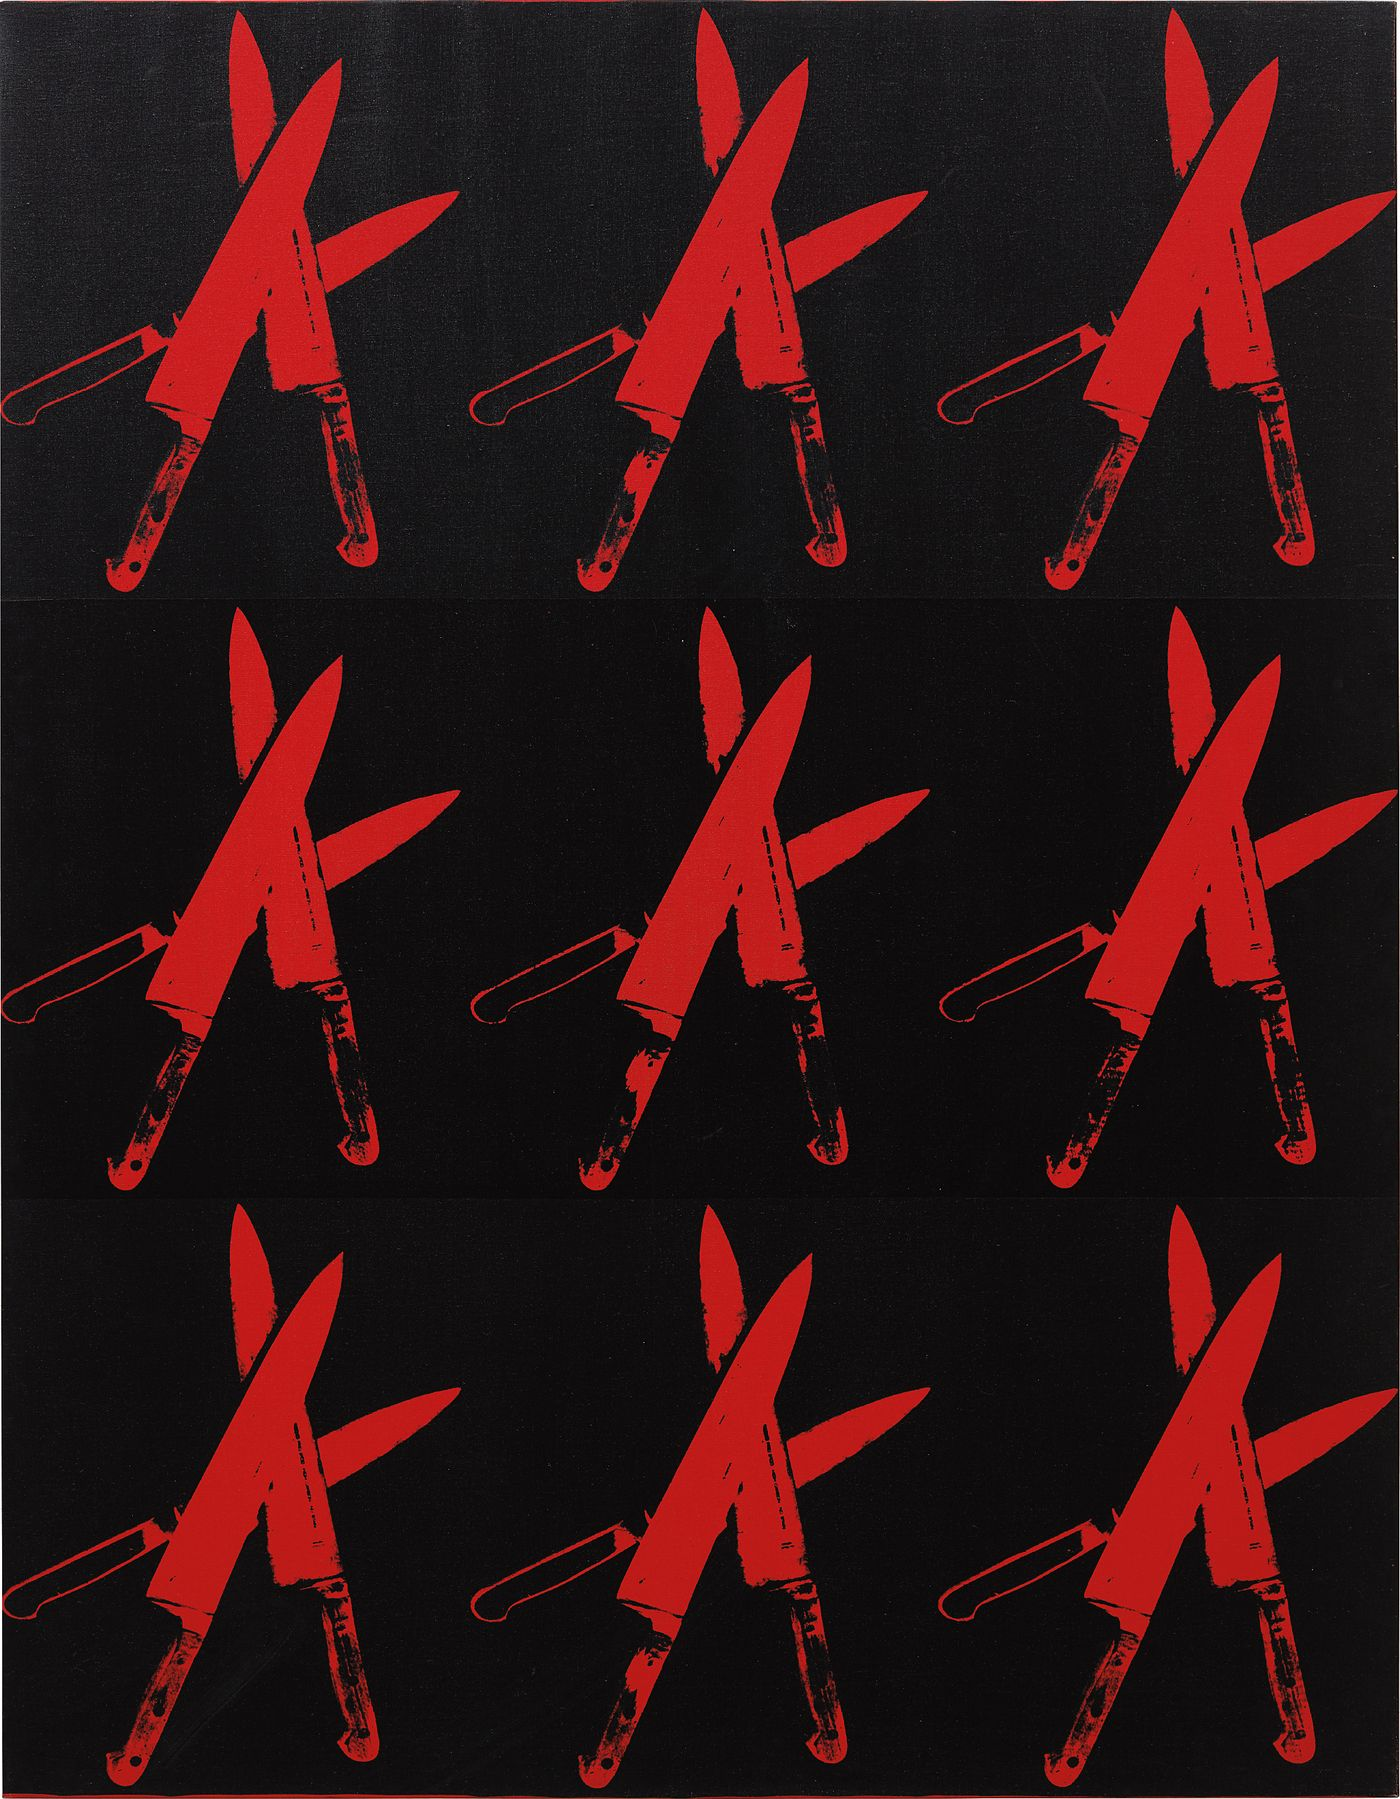 Andy Warhol's silkscreens of knives and guns—the physical instruments of violence—reveal an artist delving into the domain of mortality.